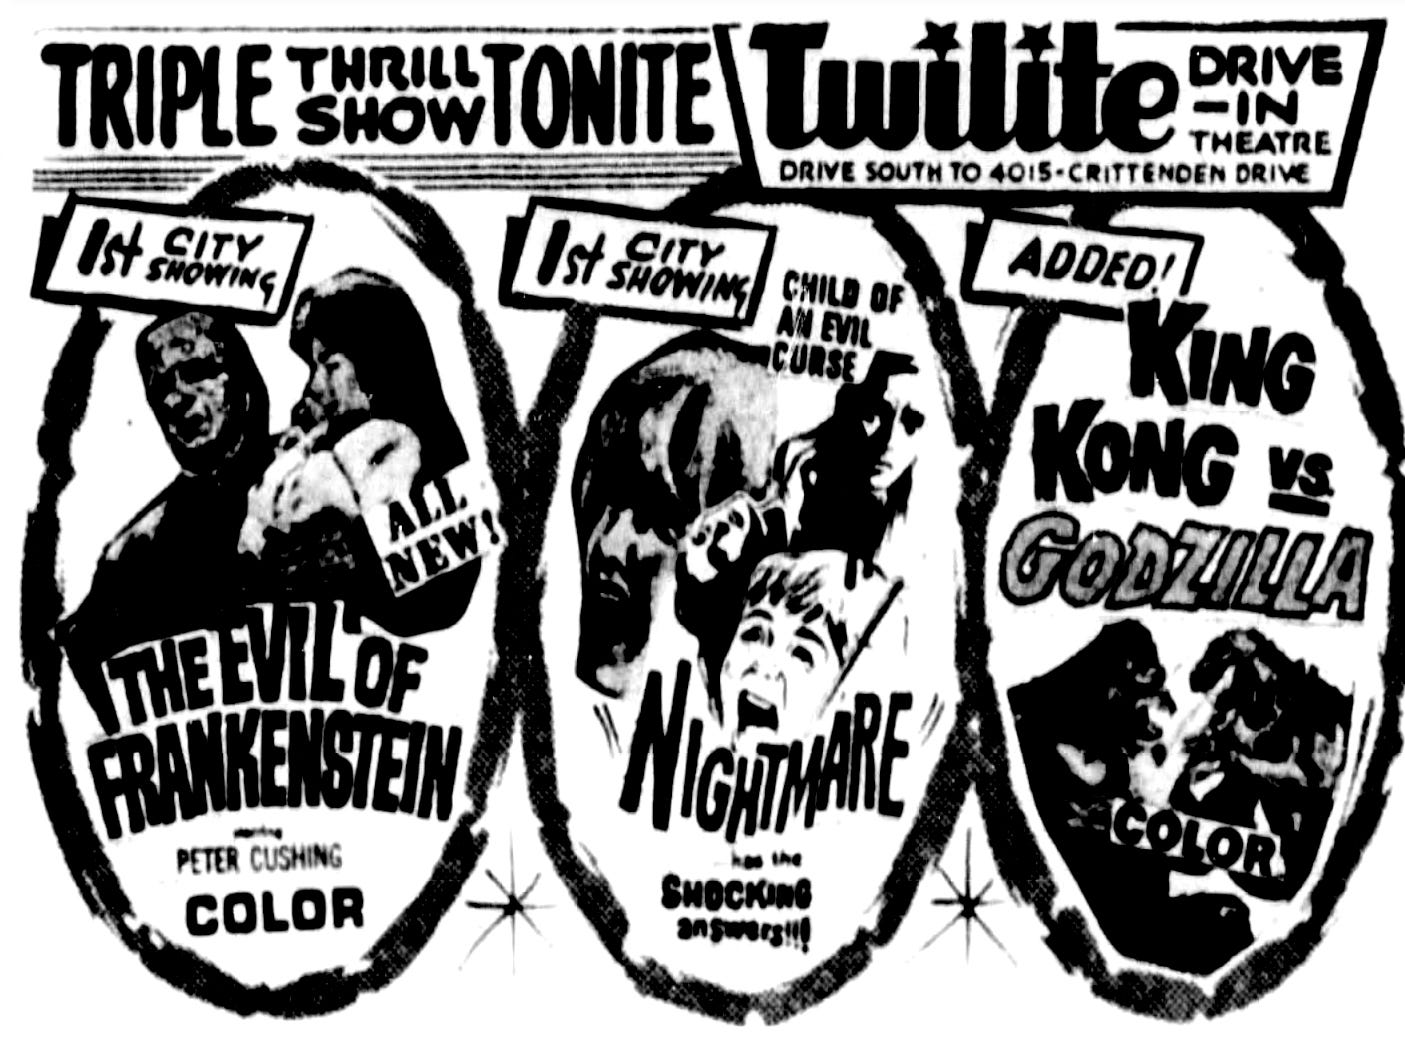 """""""The Evil of Frankenstein,"""" """"Nightmare"""" and """"King Kong vs Godzilla,"""" Monday, June 1, 1964"""